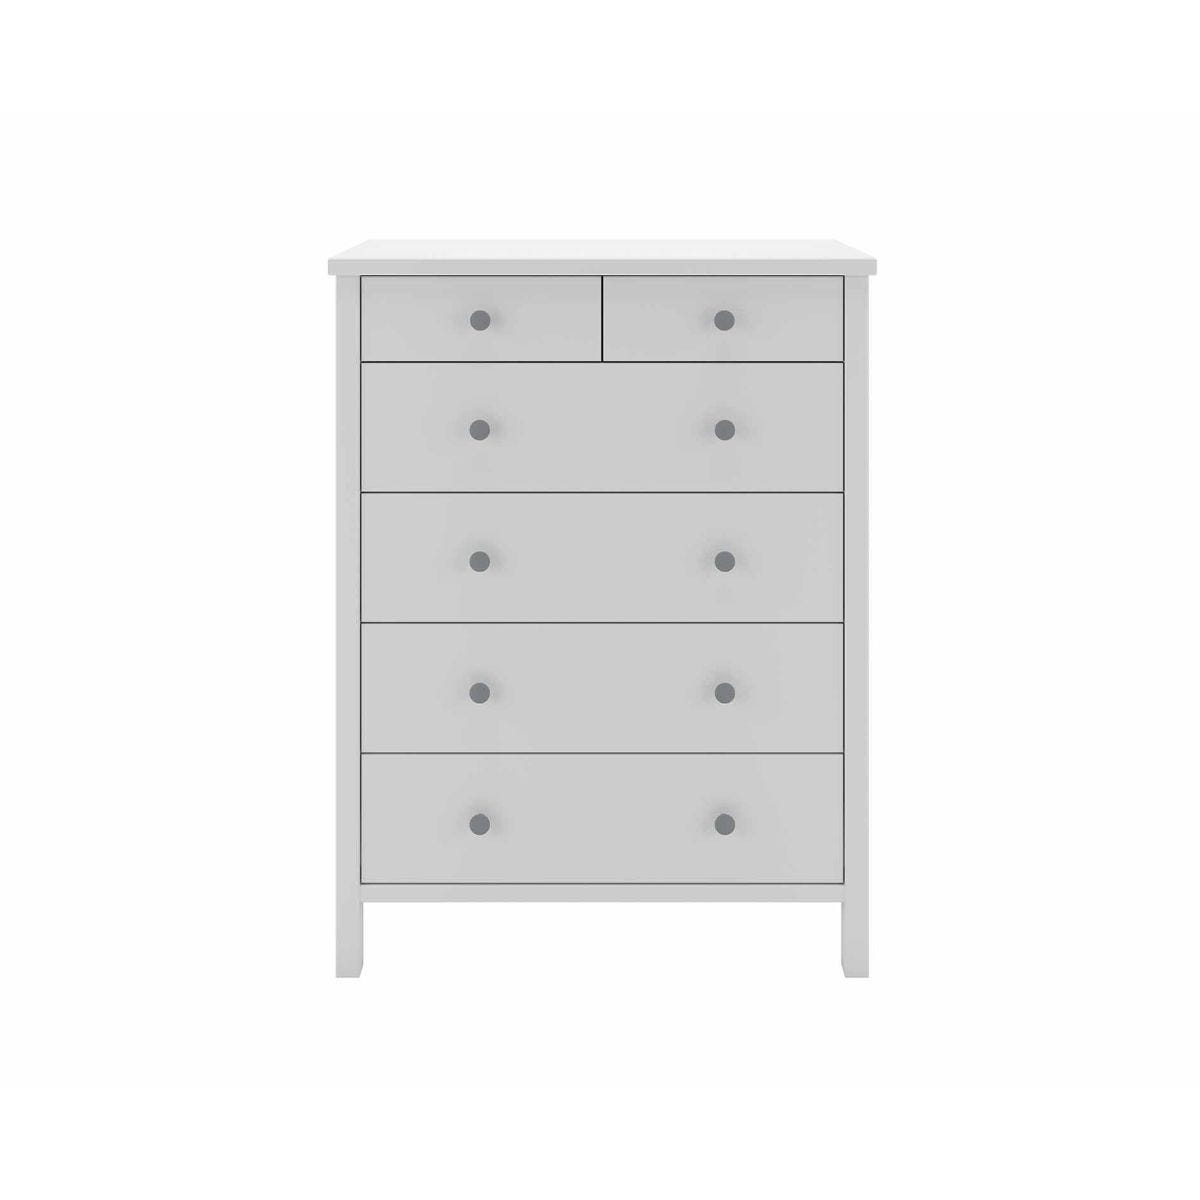 Steens Tromso 2 Over 4 Chest of Drawers, White